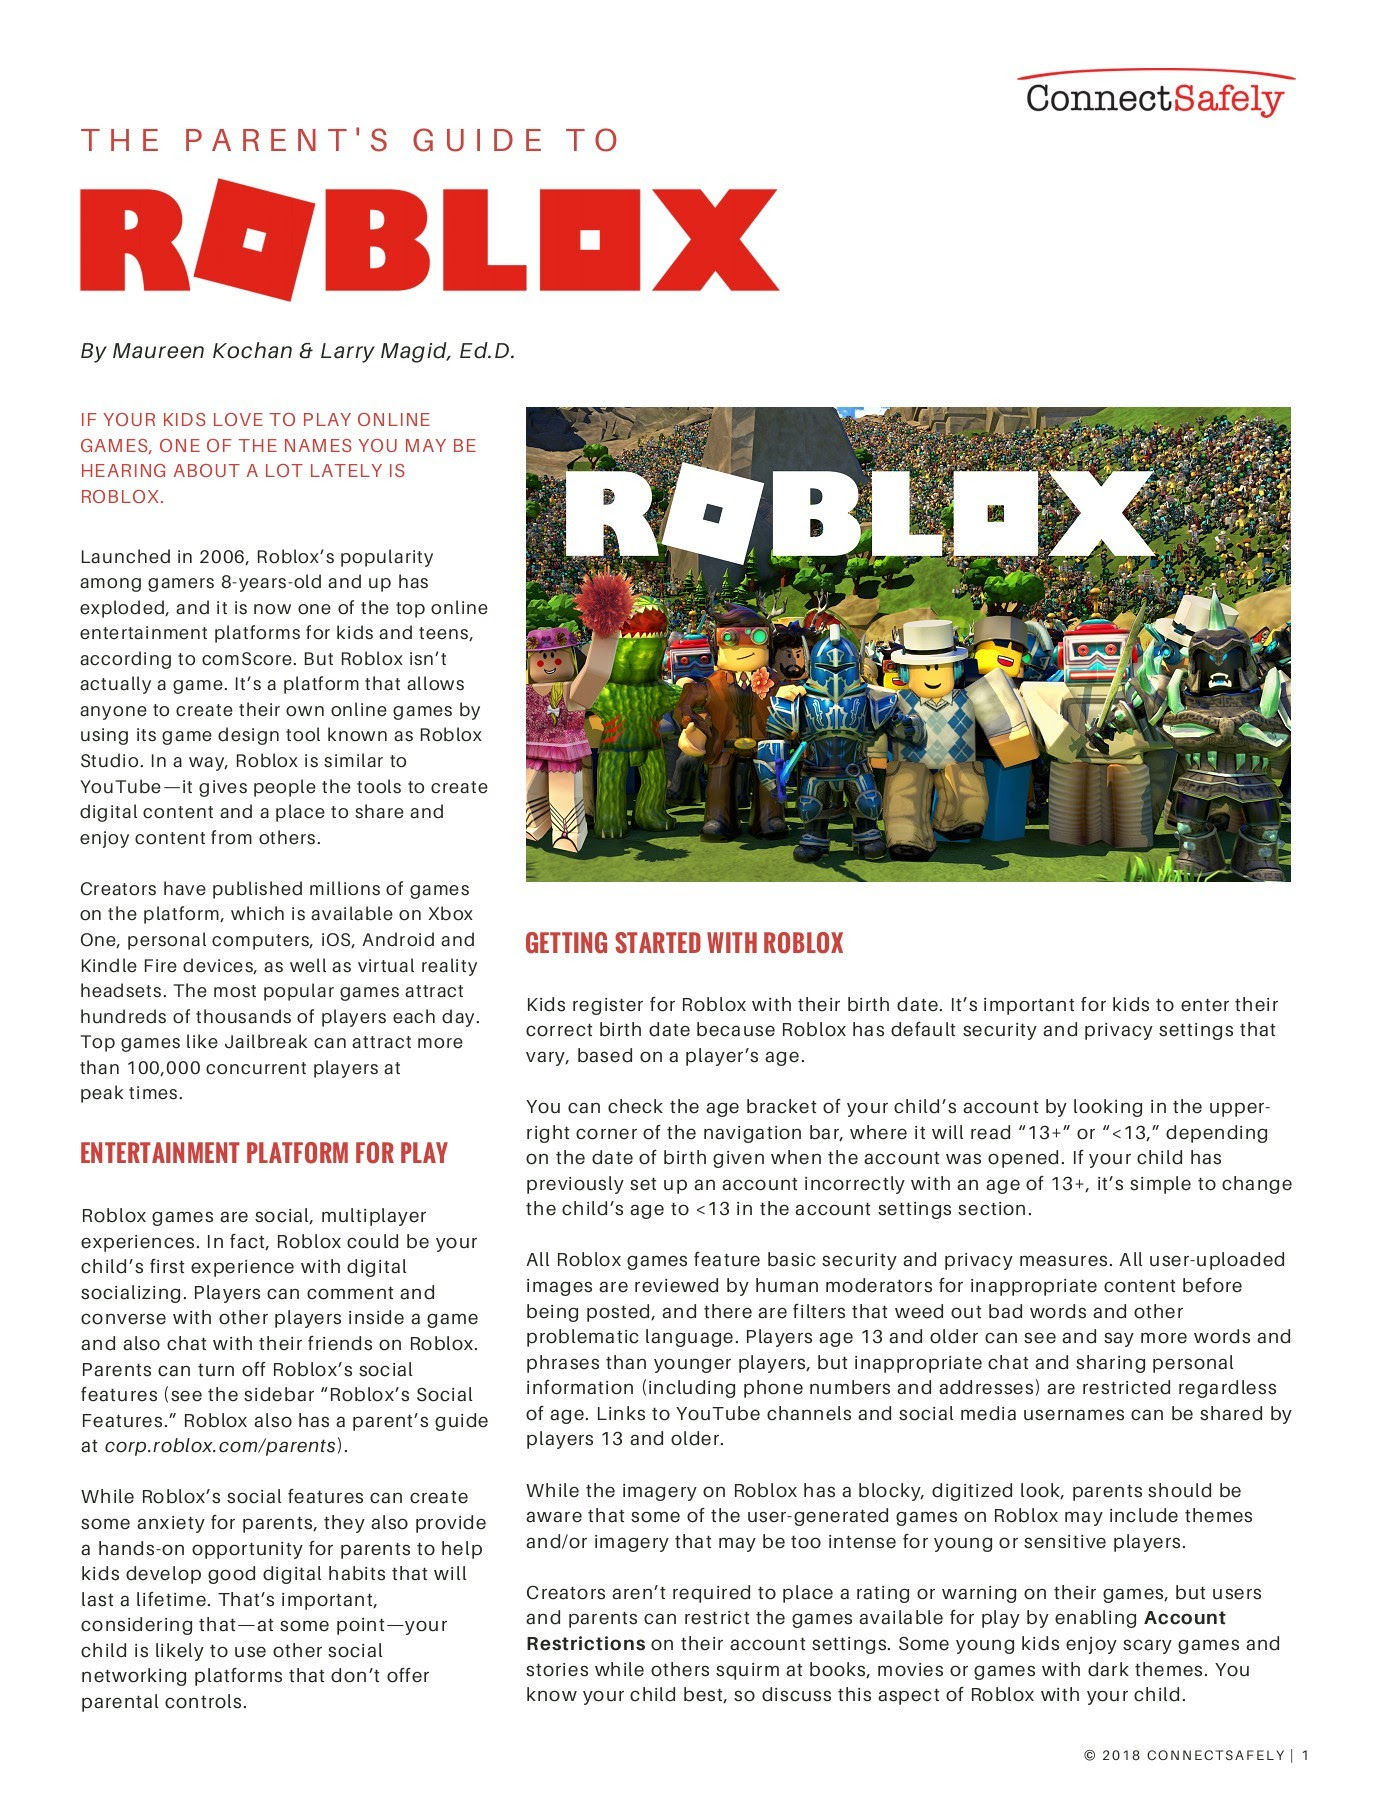 Roblox Parents Guide Pages 1 4 Text Version Fliphtml5 - 1 click free robux for kids